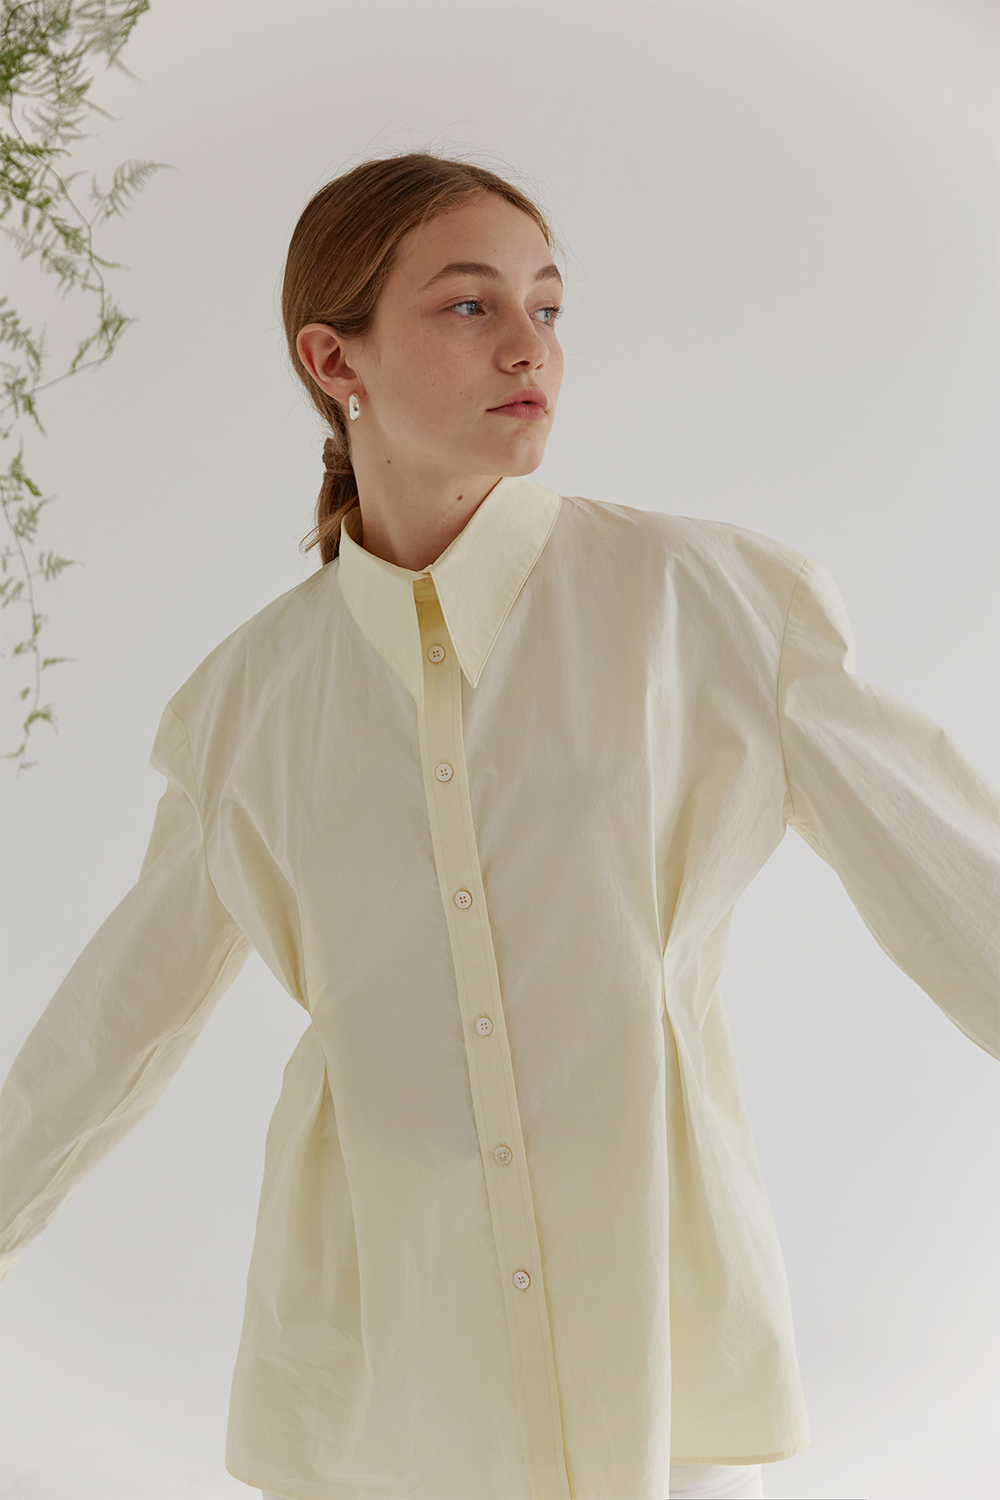 anthese claire point shirts, lemon